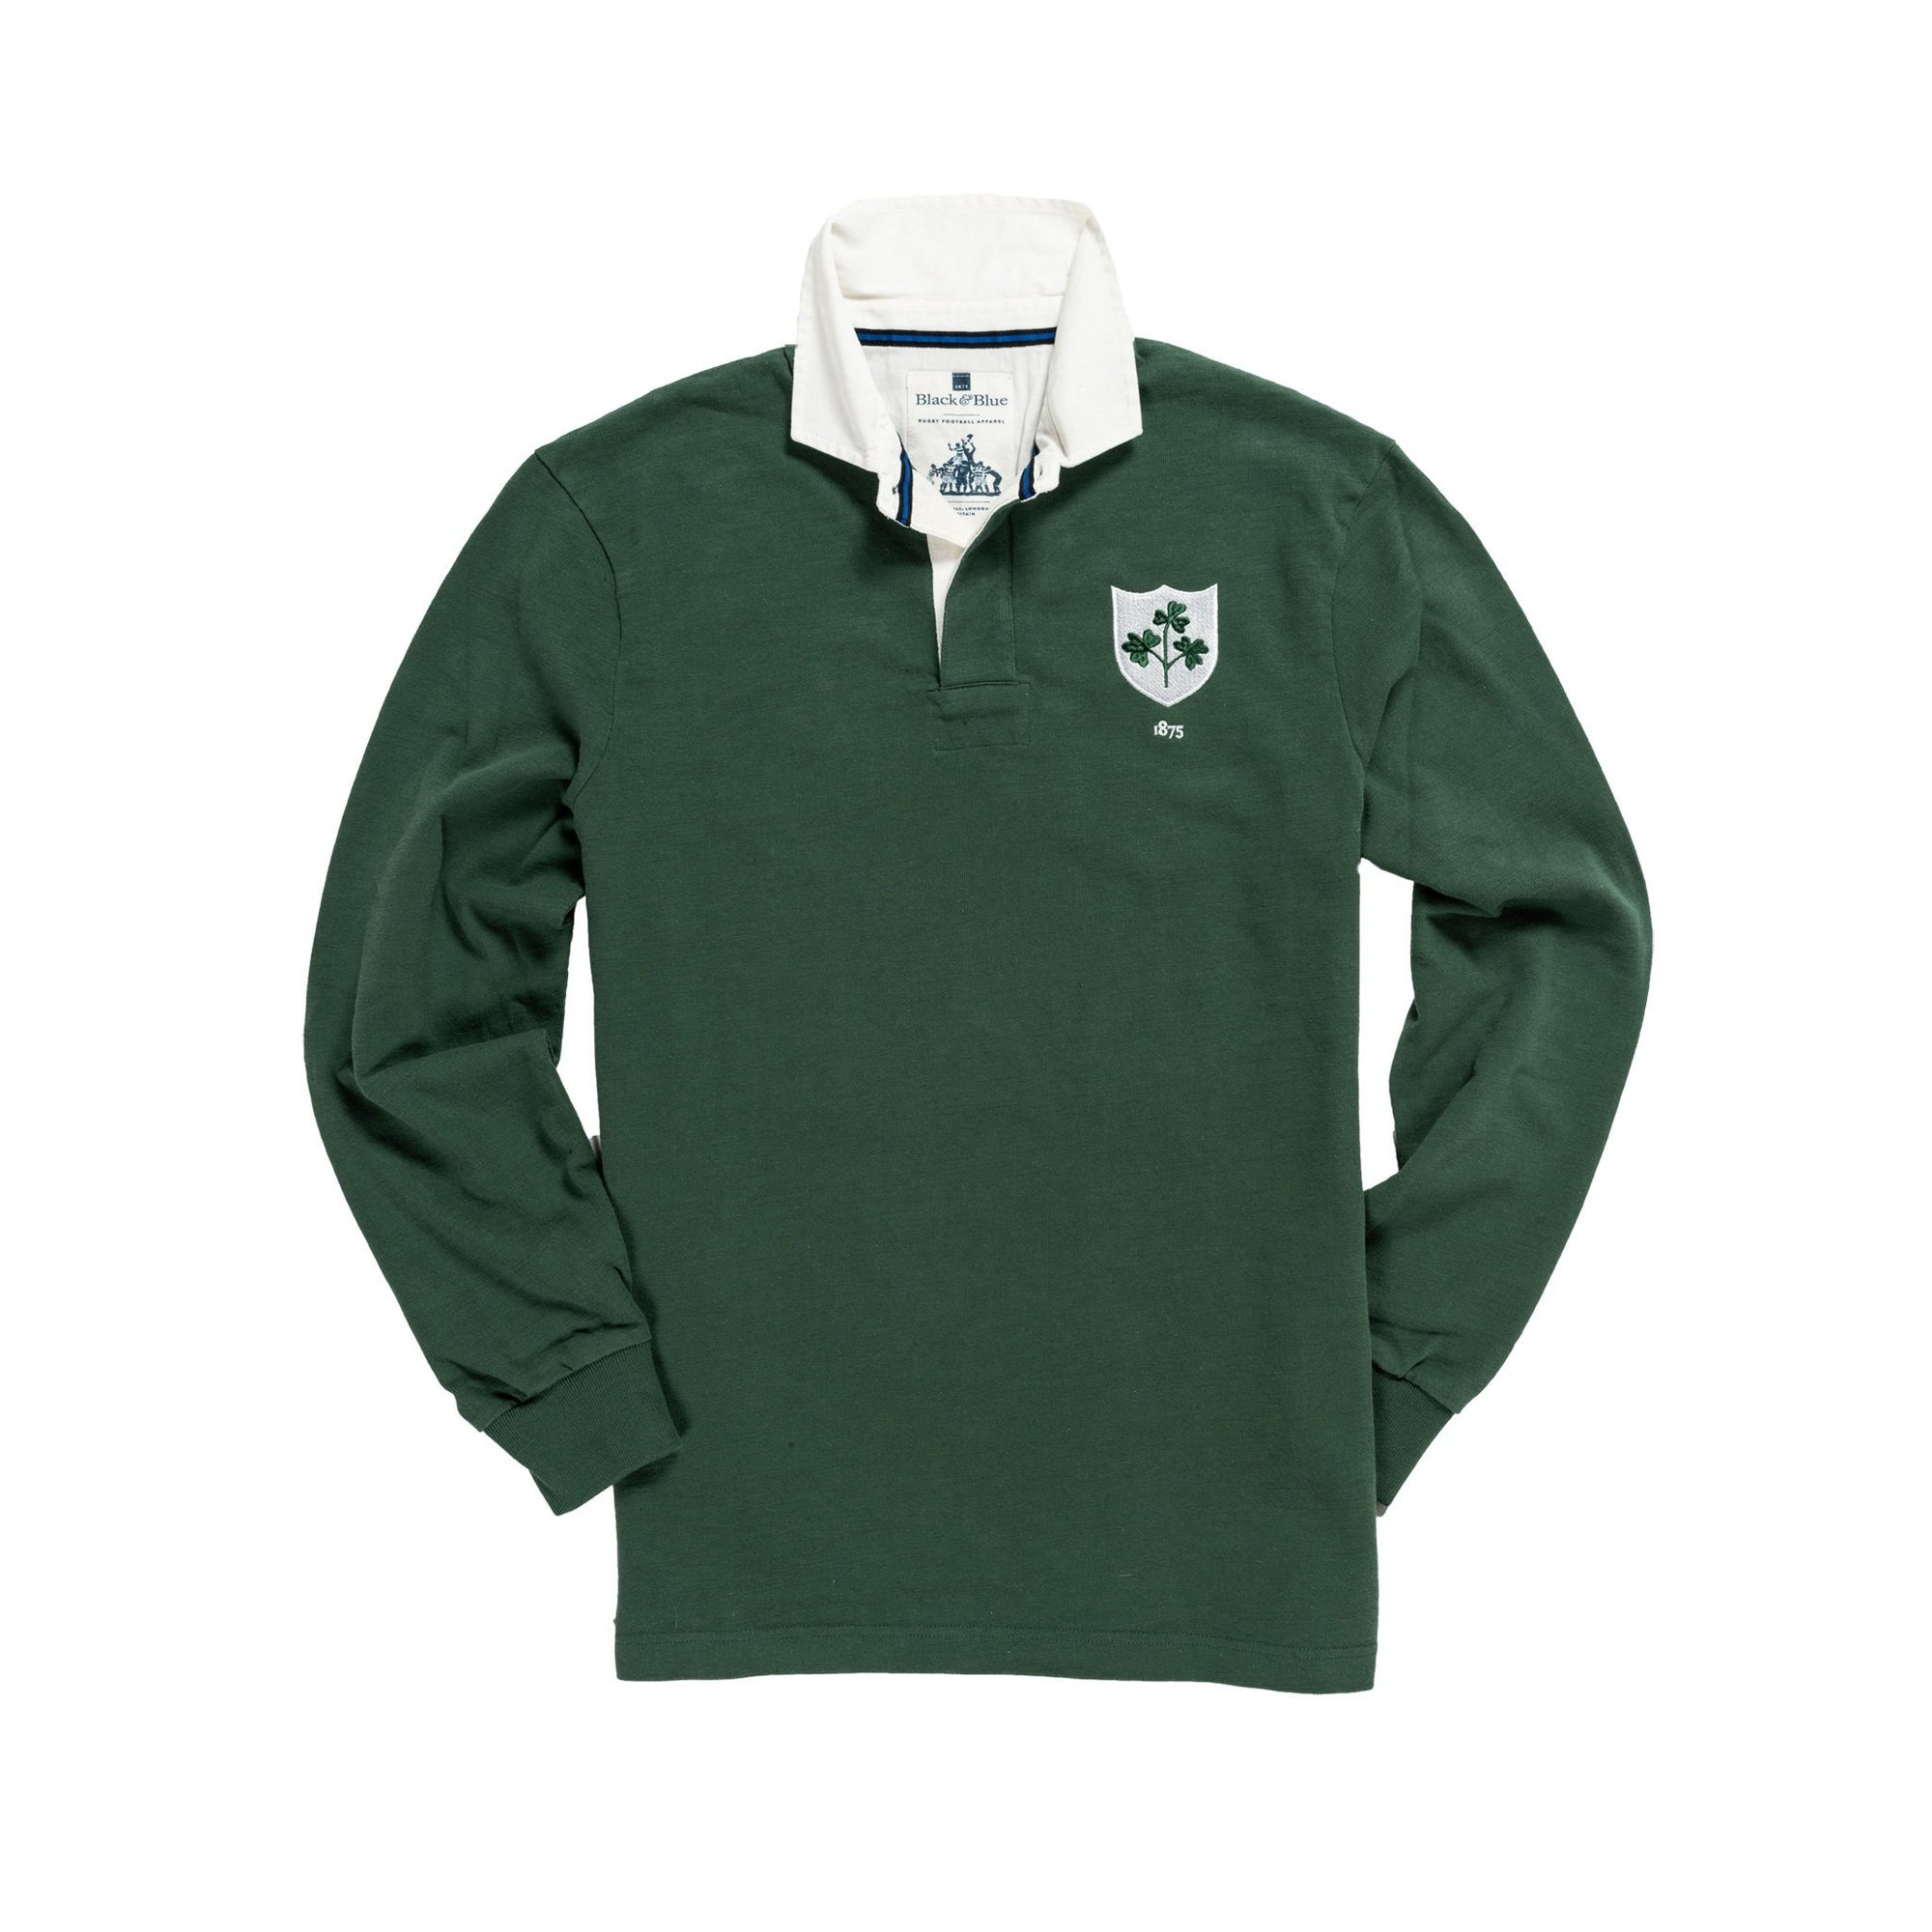 Black & Blue 1871 | Ireland 1875 Rugby Shirt | Heavy Cotton Rugby Shirt